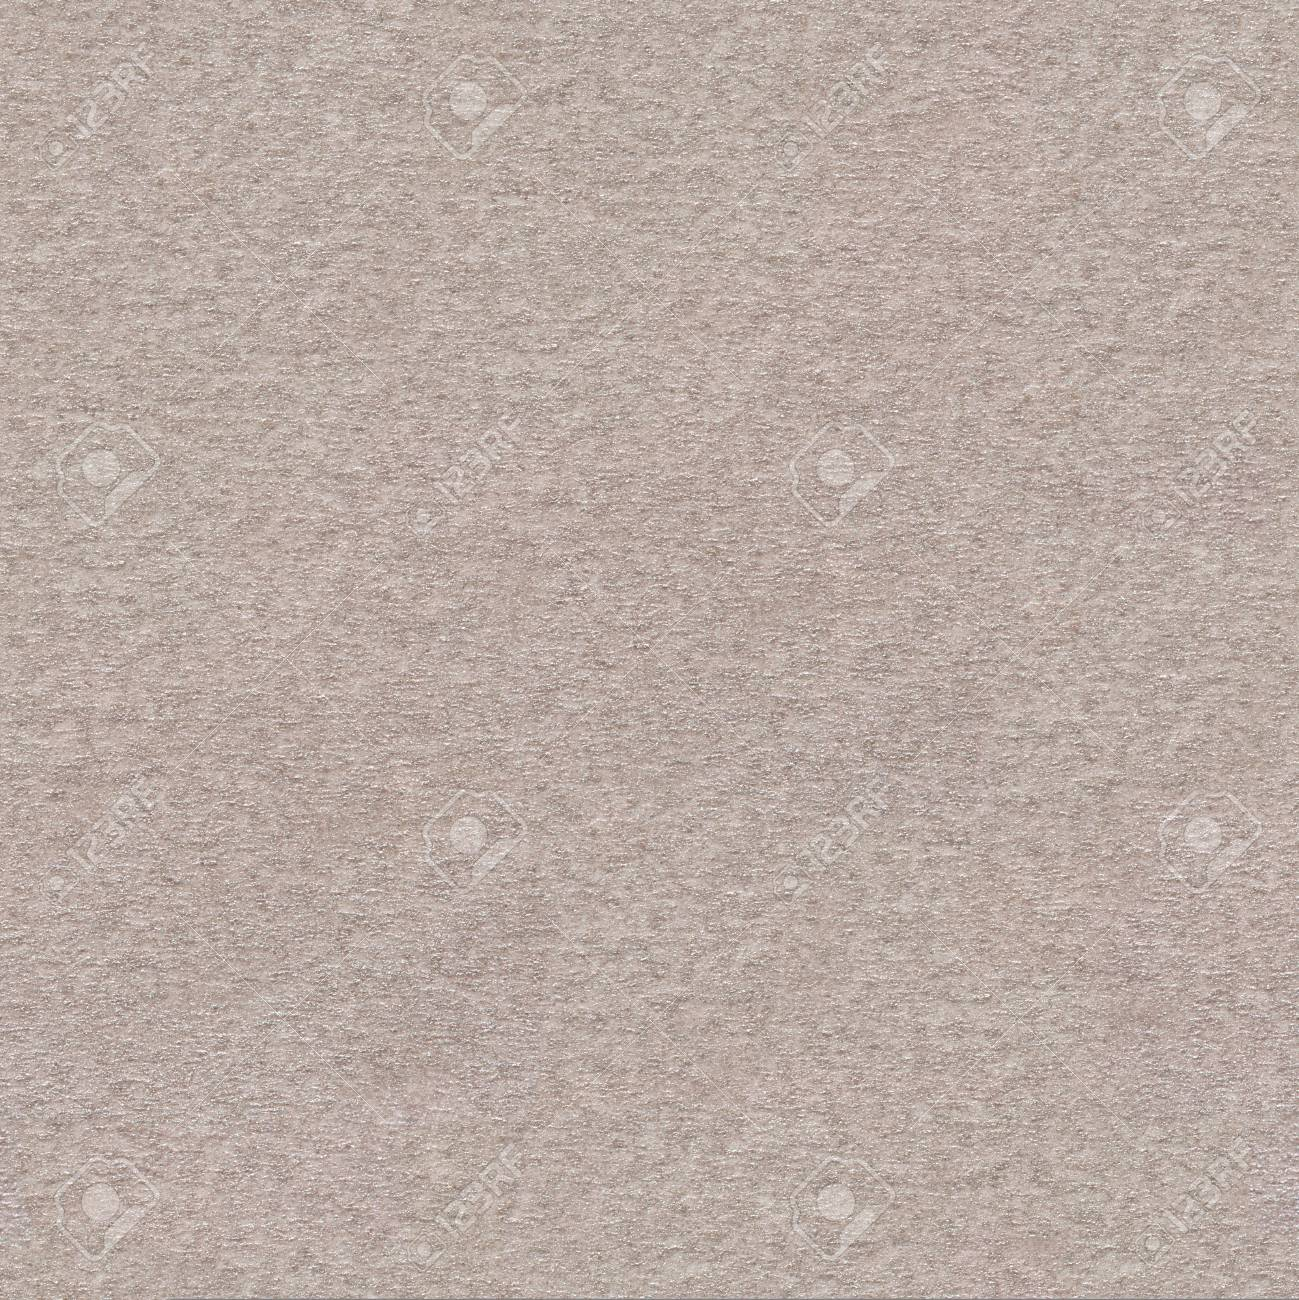 Must see Wallpaper High Quality Texture - 73501907-horizontal-rough-texture-of-vinyl-wallpaper-seamless-square-background-tile-ready-high-quality-textu  Snapshot_696411.jpg